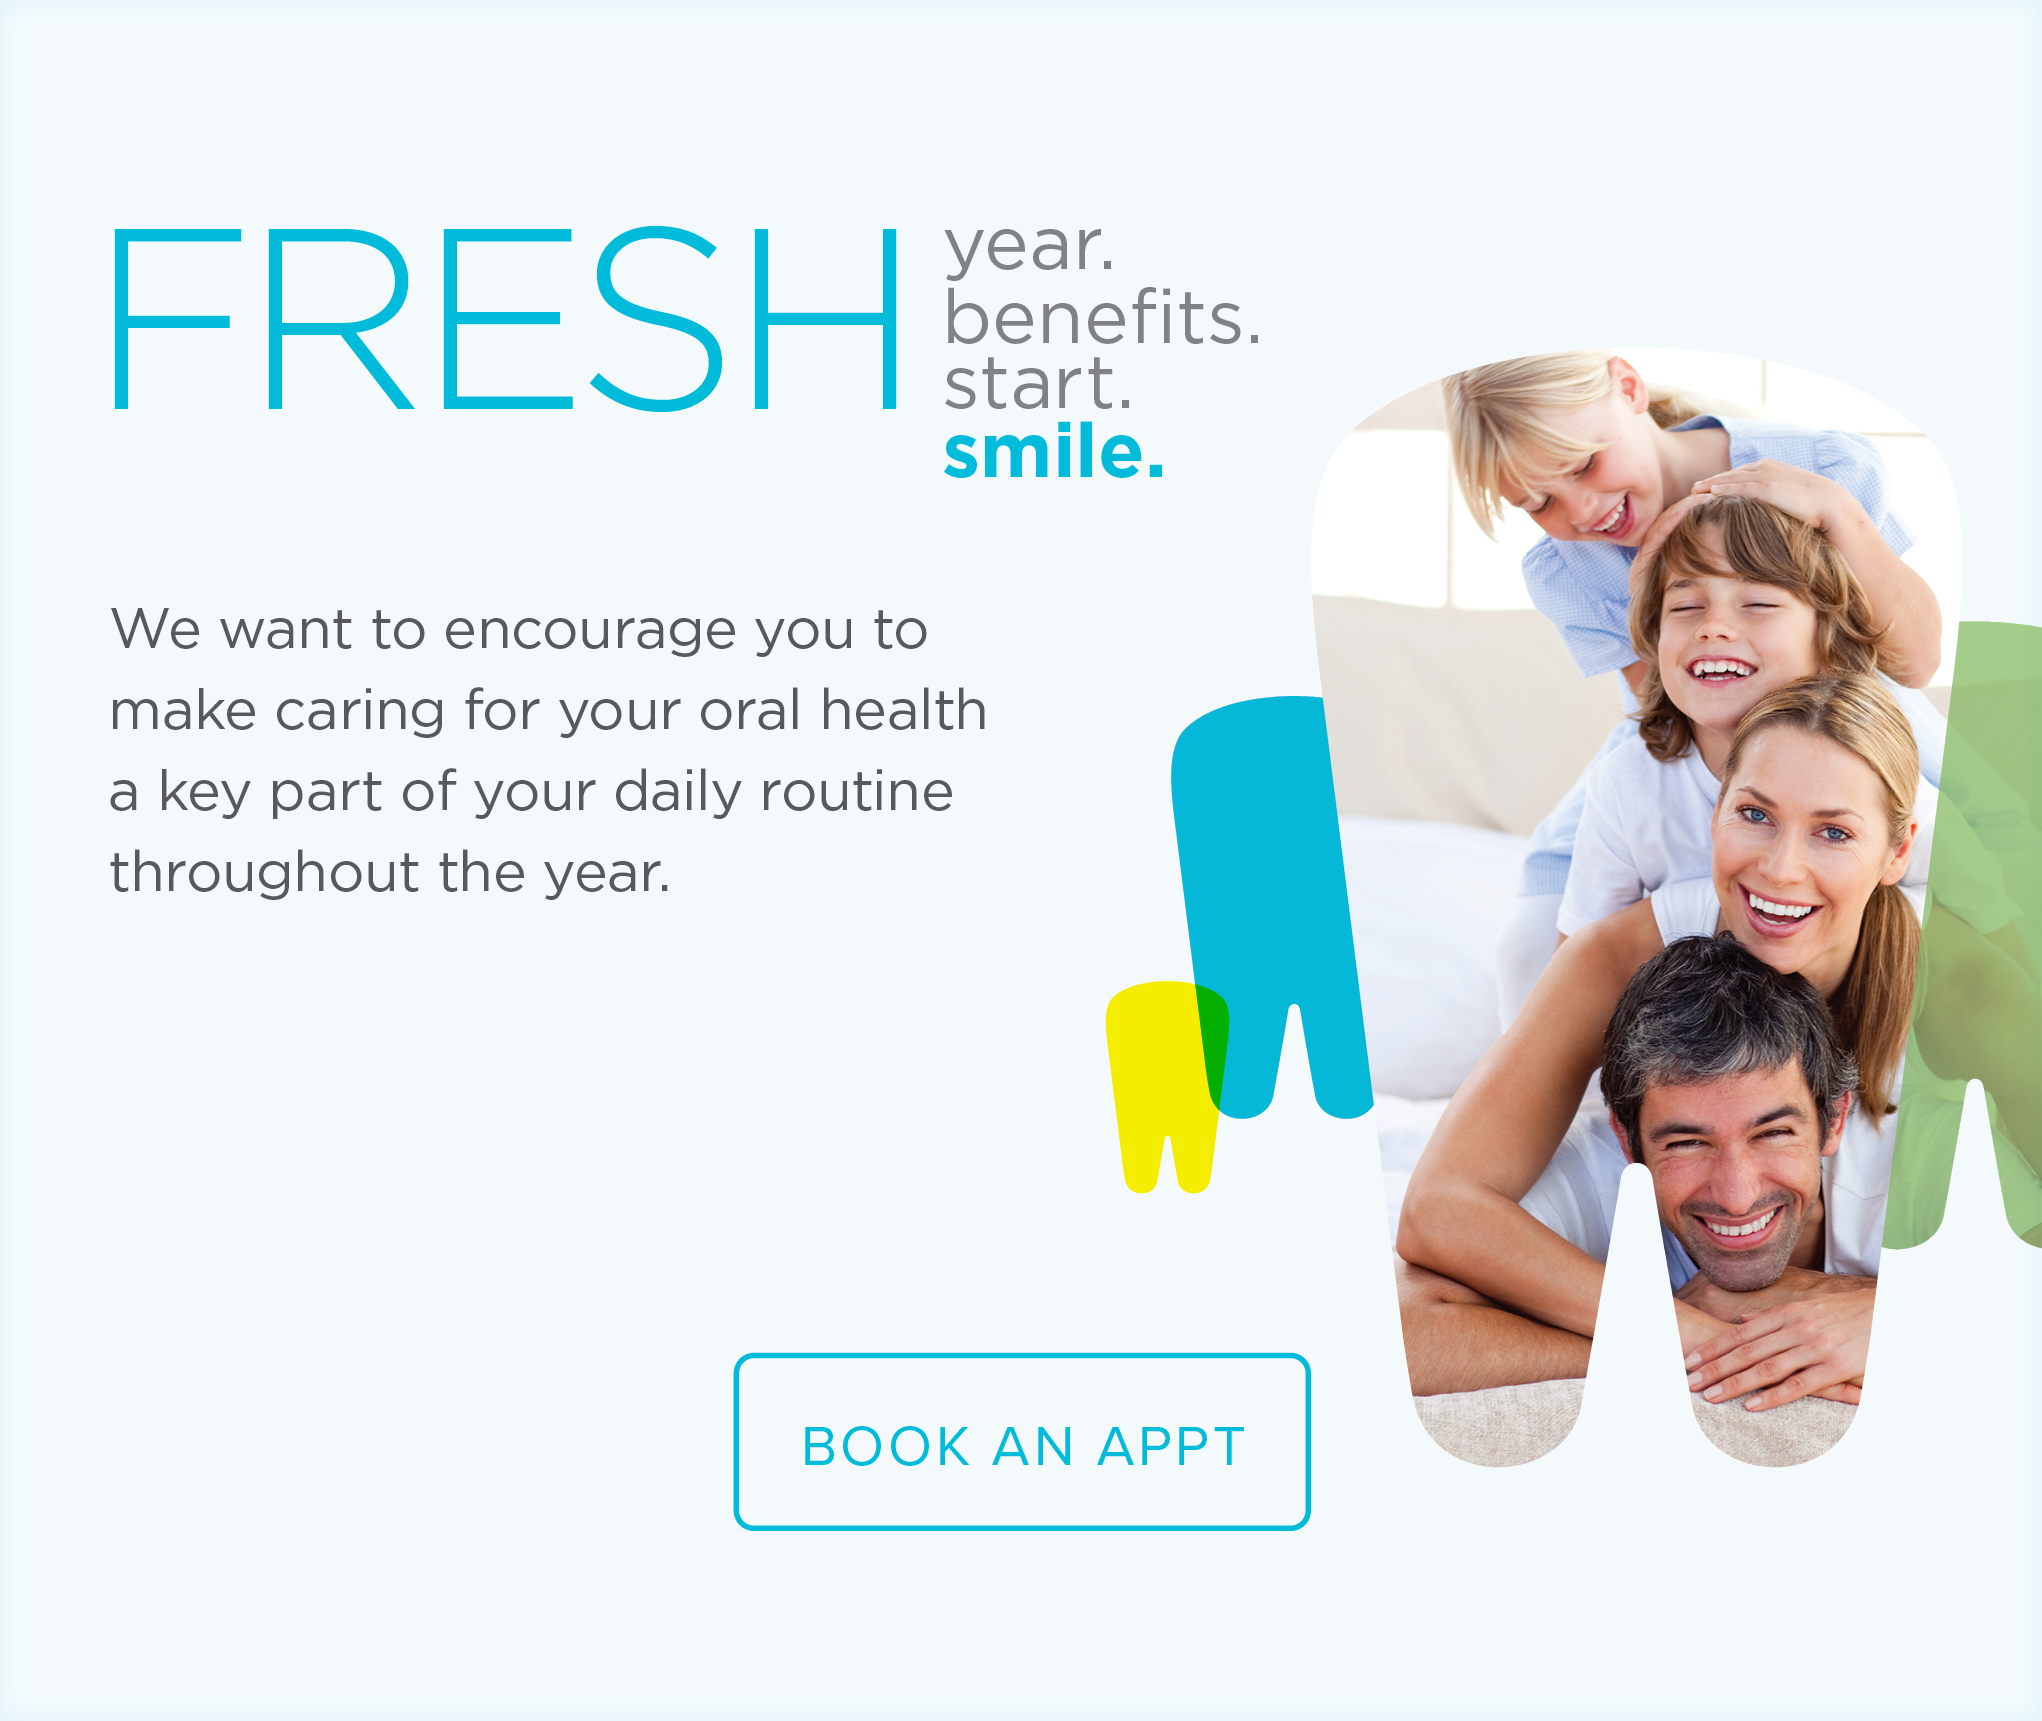 Clinton Keith Dental Group - Make the Most of Your Benefits